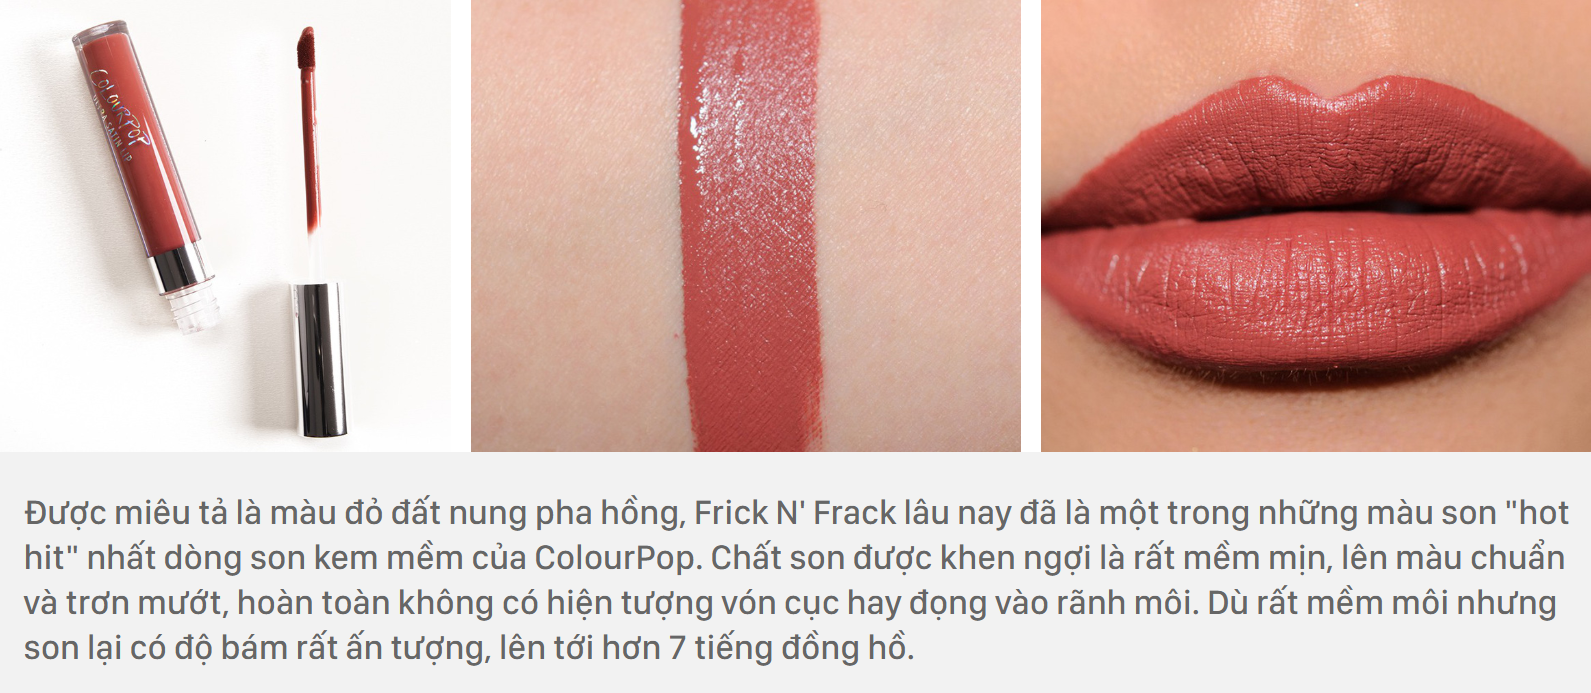 ColourPop Ultra Satin Liquid Lipstick màu Frick N' Frack